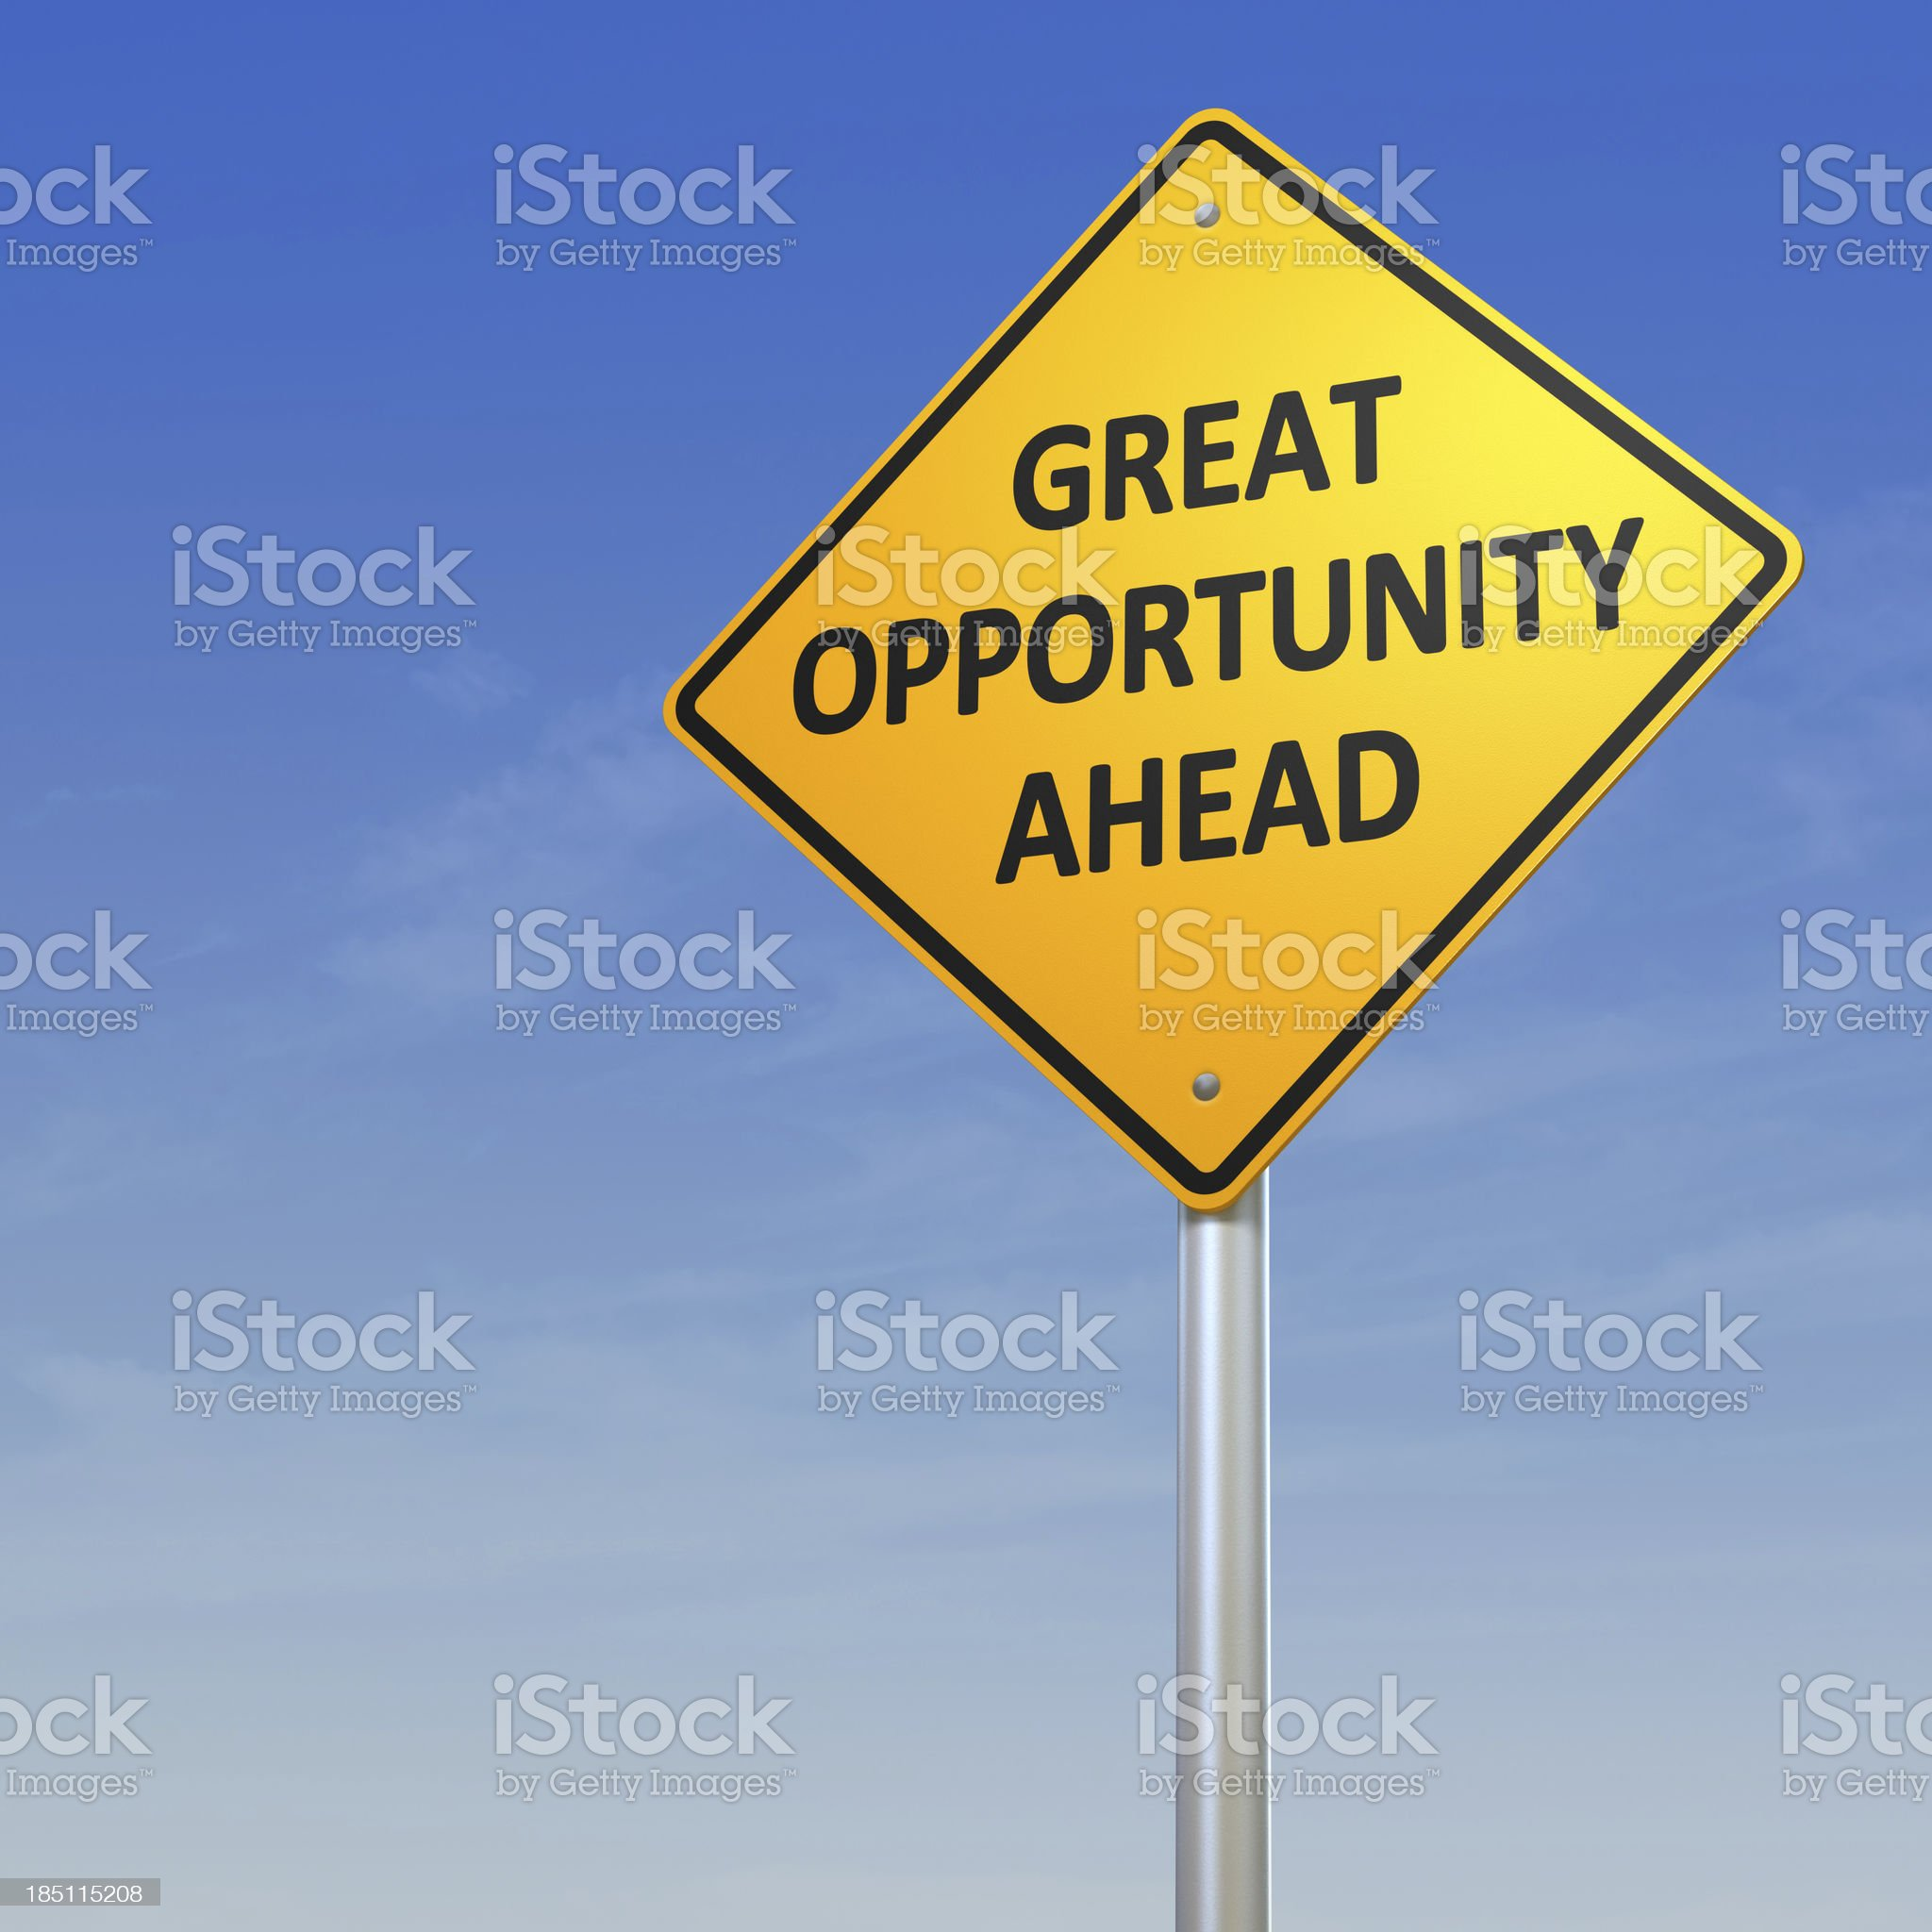 Great Opportunity Ahead Road Warning Sign royalty-free stock photo